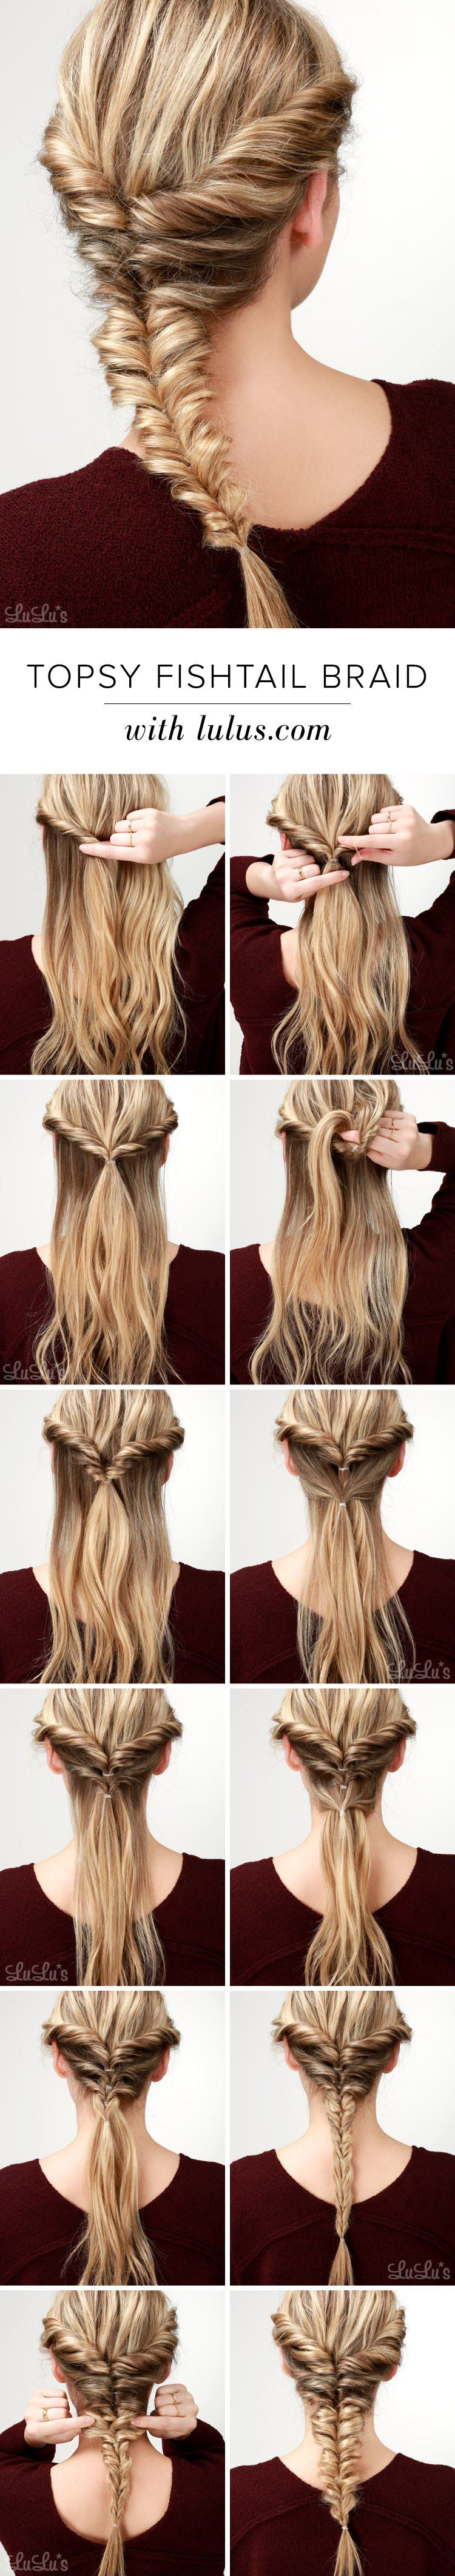 simple and easy lazy girl hairstyle tips that are done in less